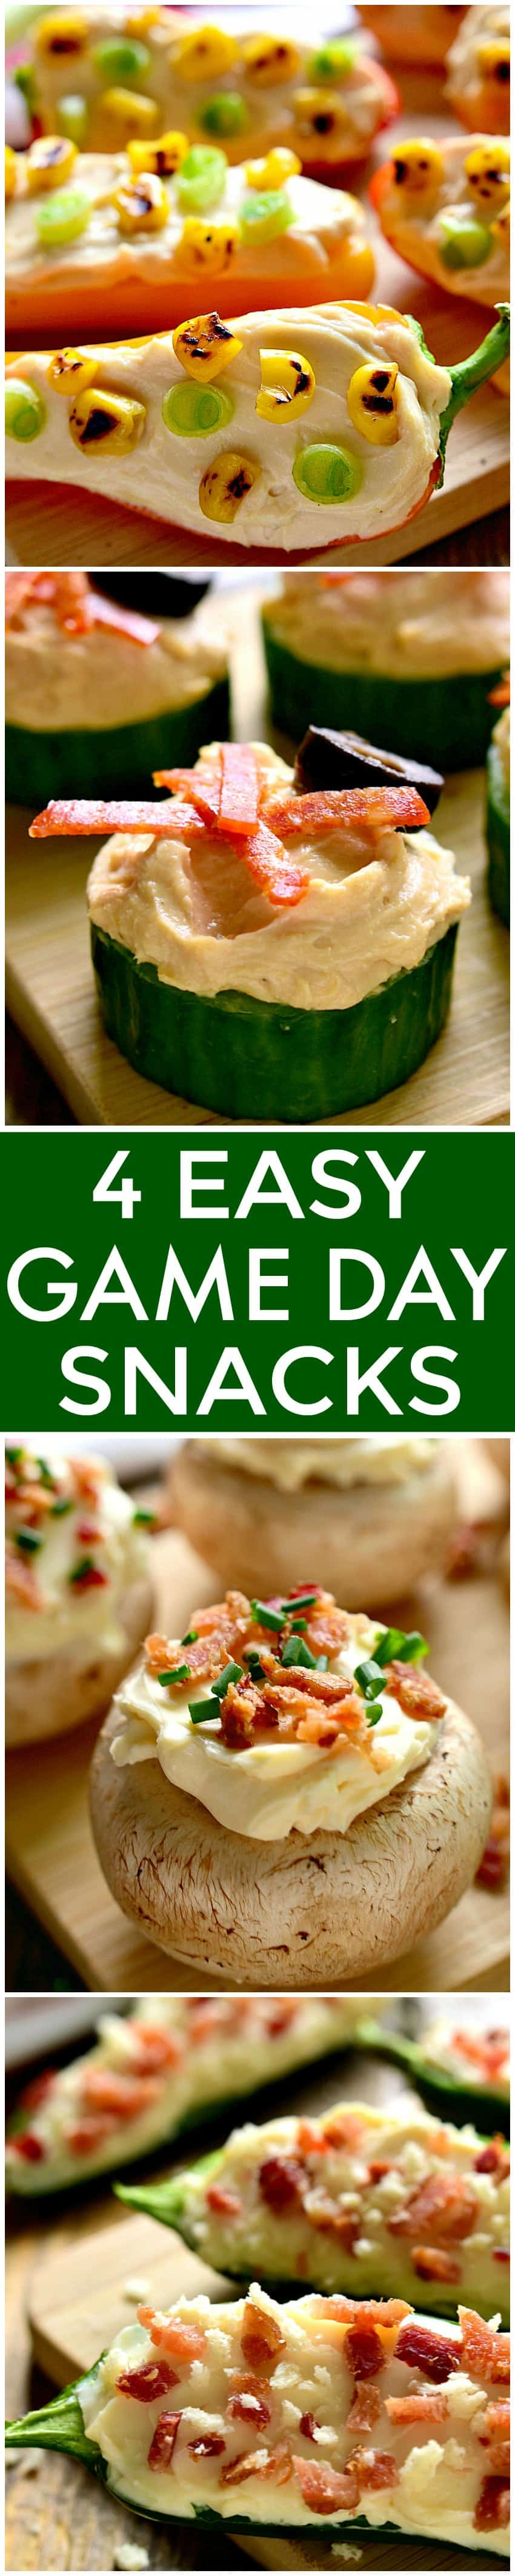 4 Easy Game Day Snacks, each made with just 4 ingredients! Perfect for game days, parties, or anytime you're looking for an easy, delicious, satisfying snack!